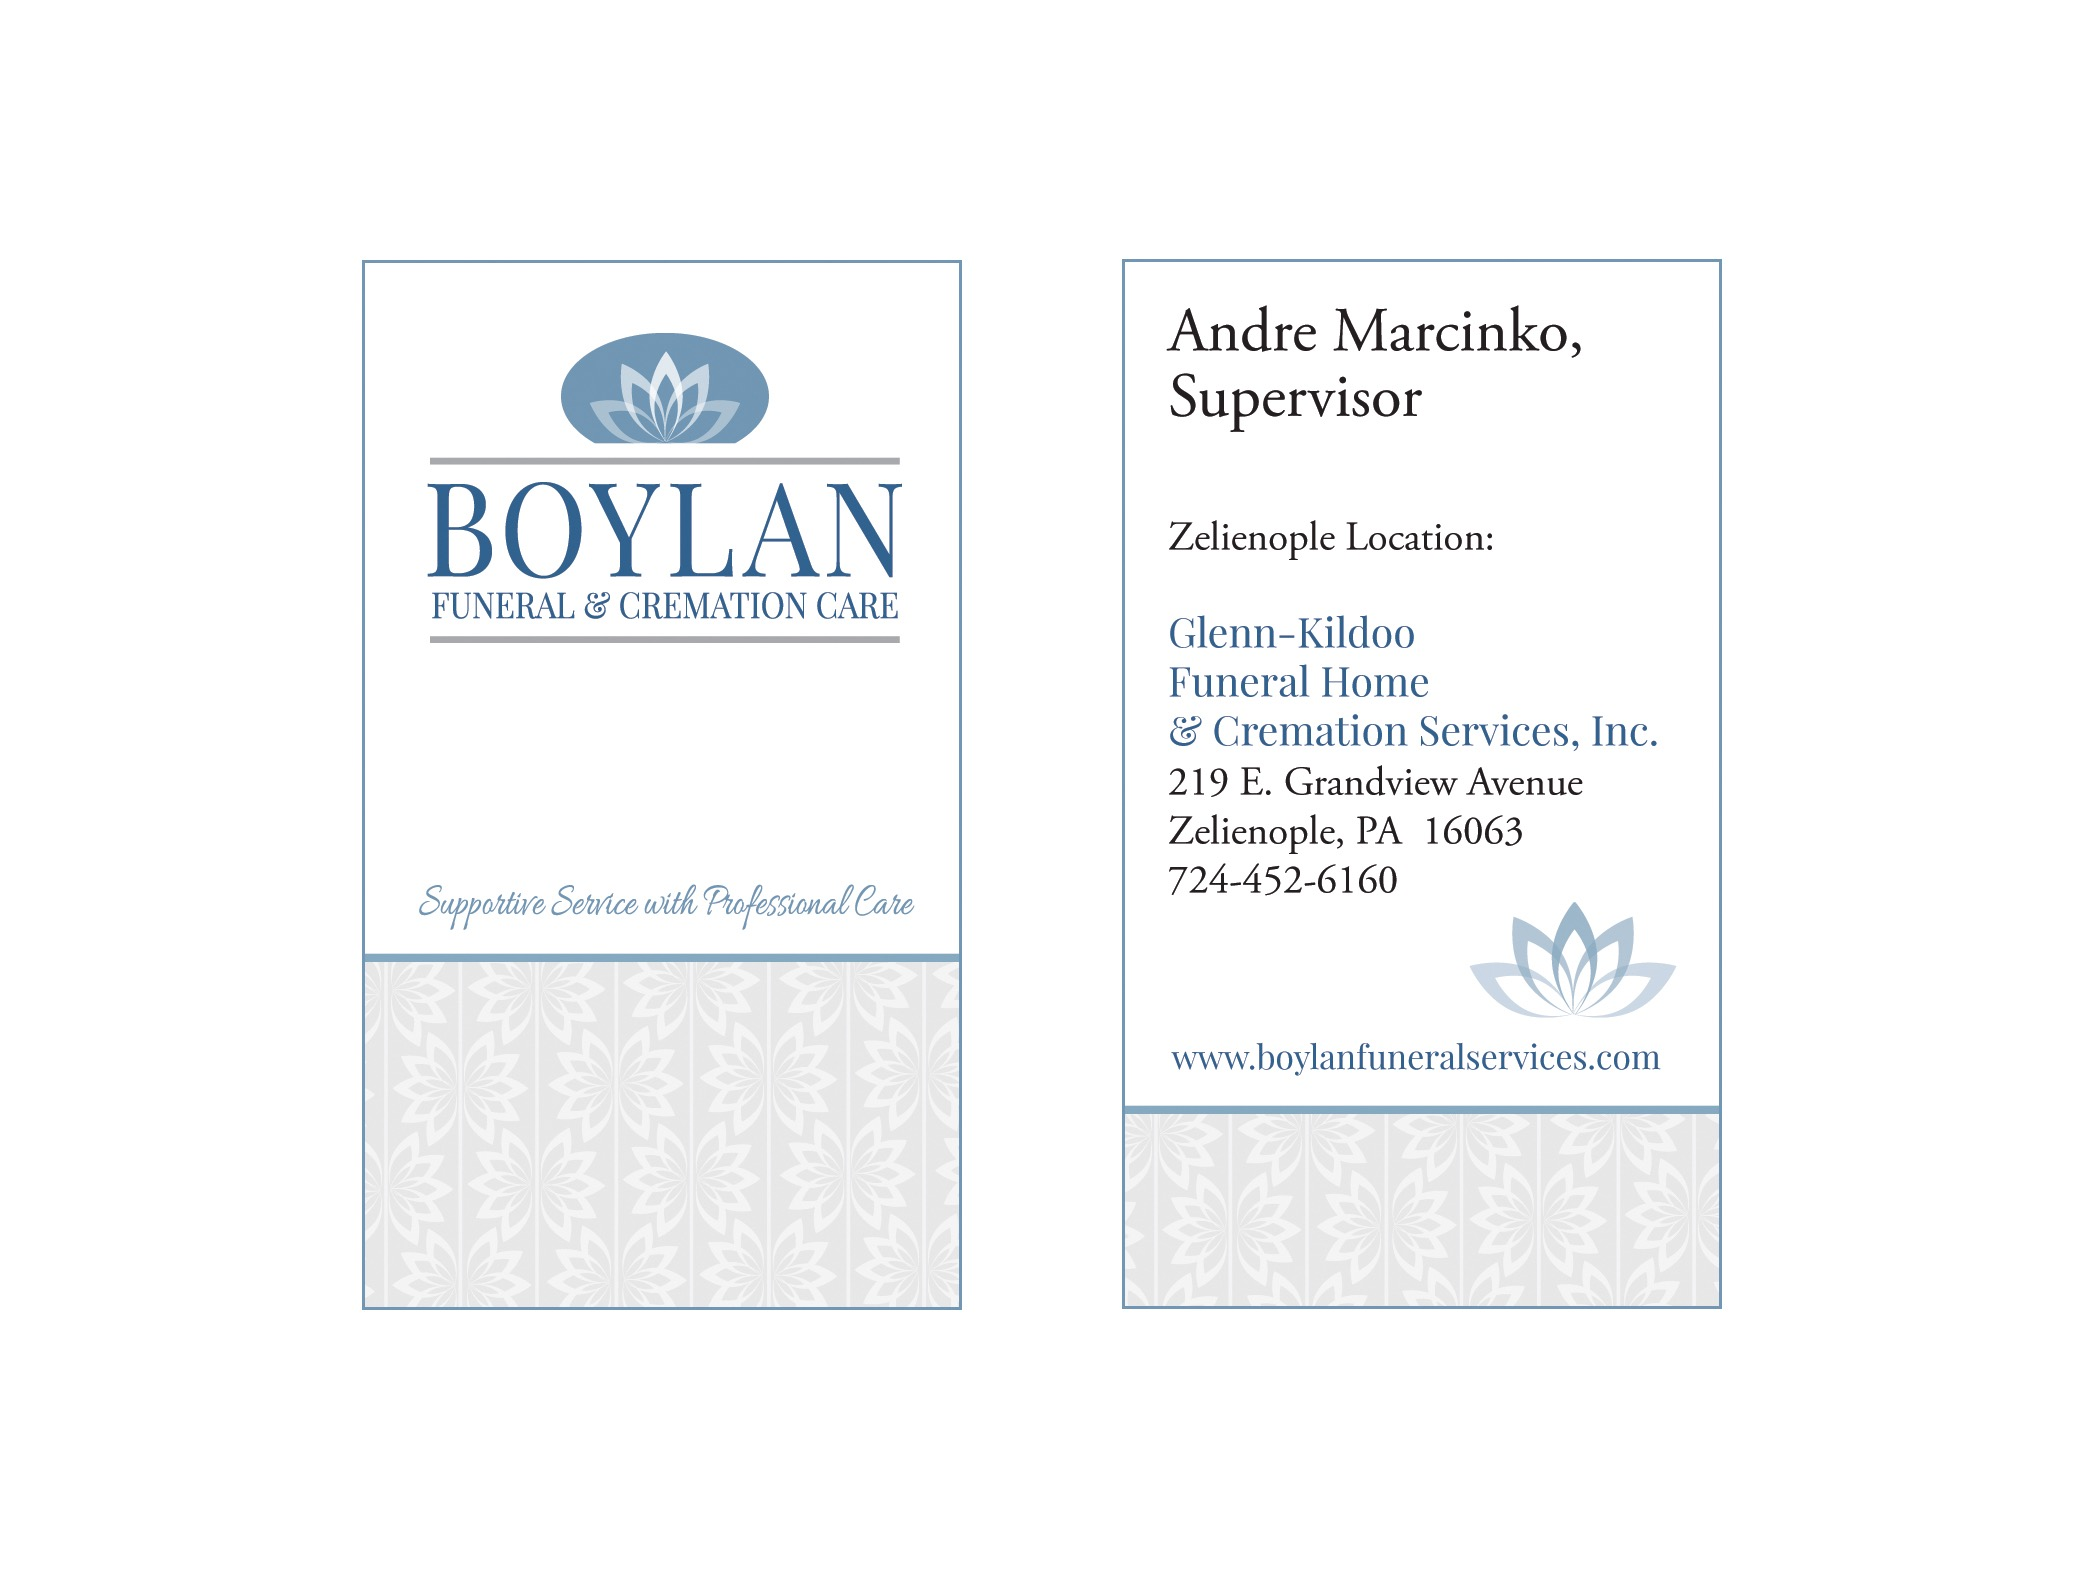 Boylan business card.jpg